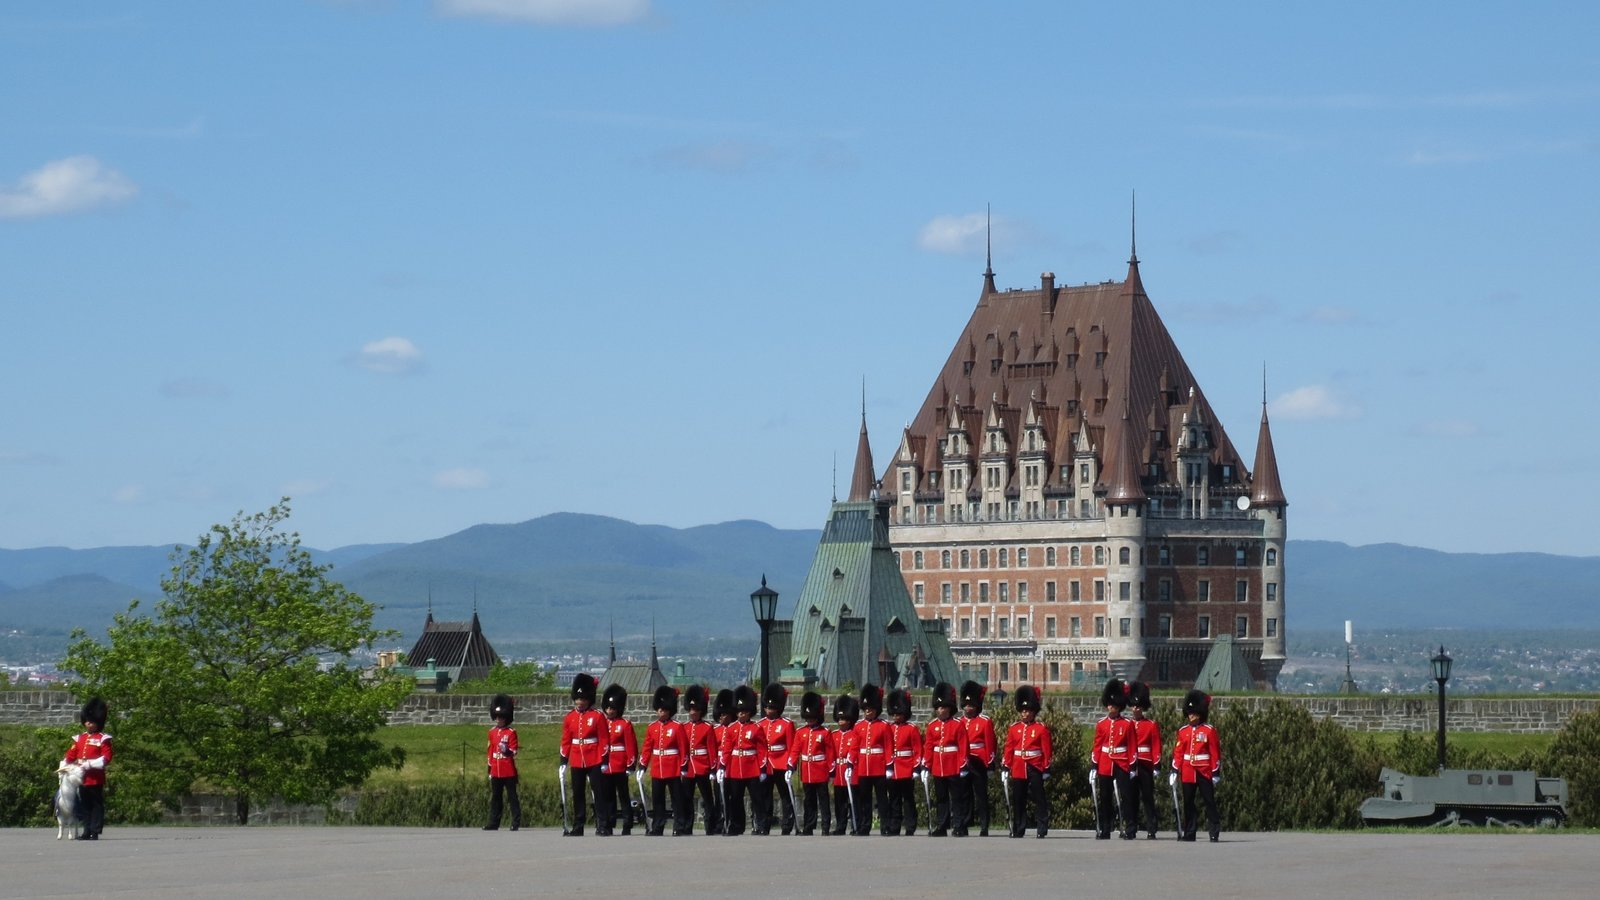 Quebec which includes chateau or palace as well as a large group of people